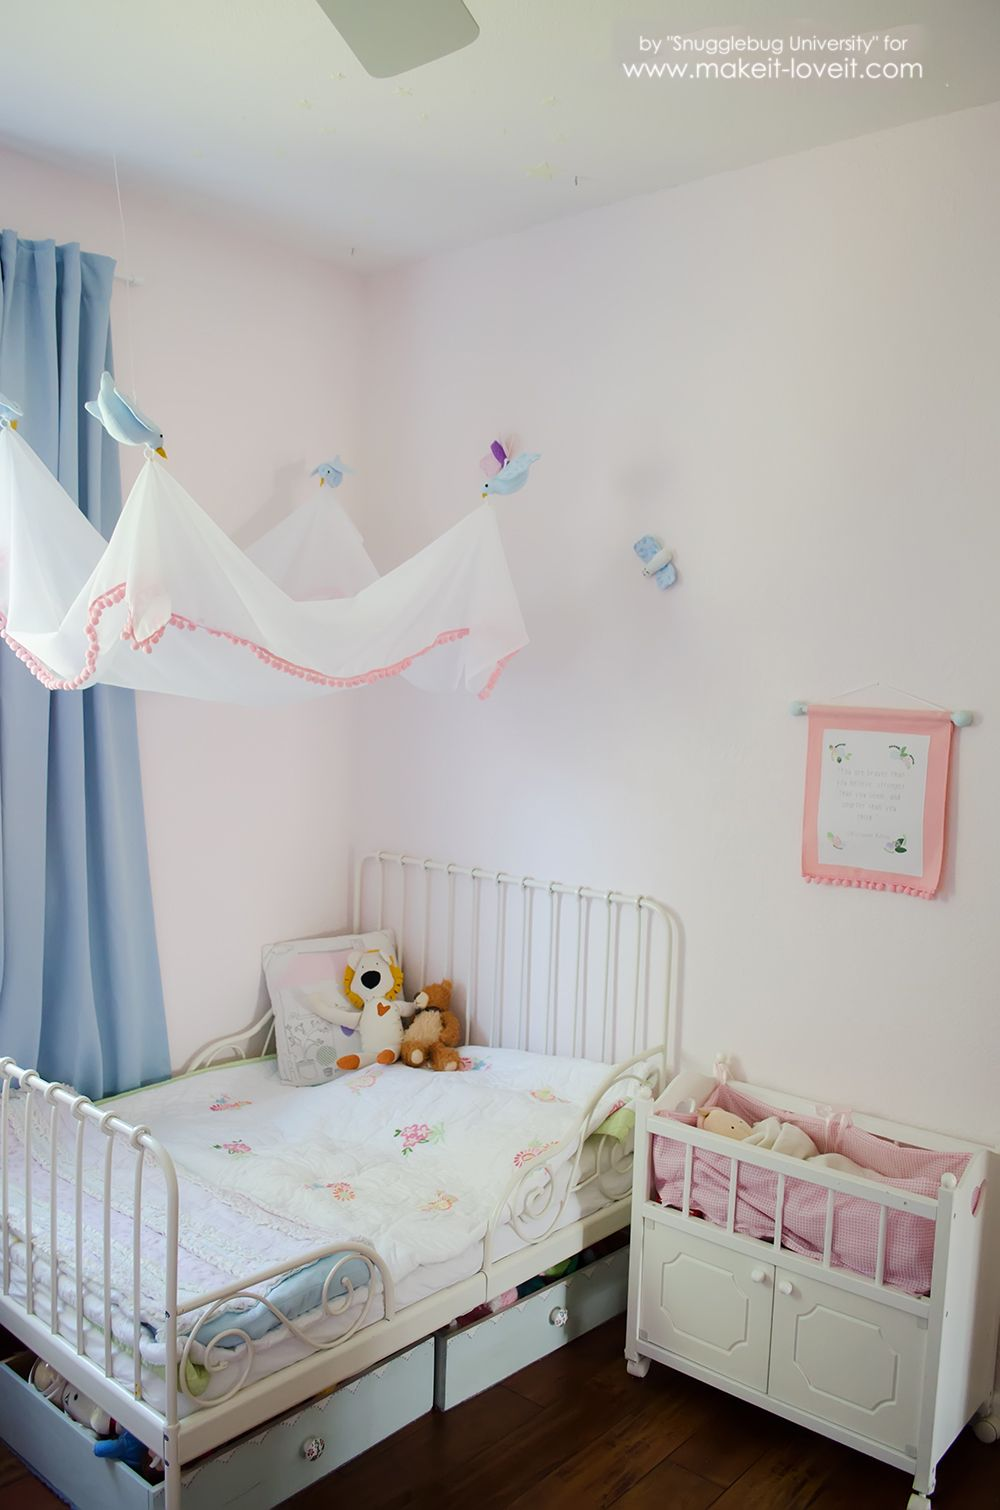 Easy Diy Bird Canopy For Above A Bed Cinderella Room Girl Room Room